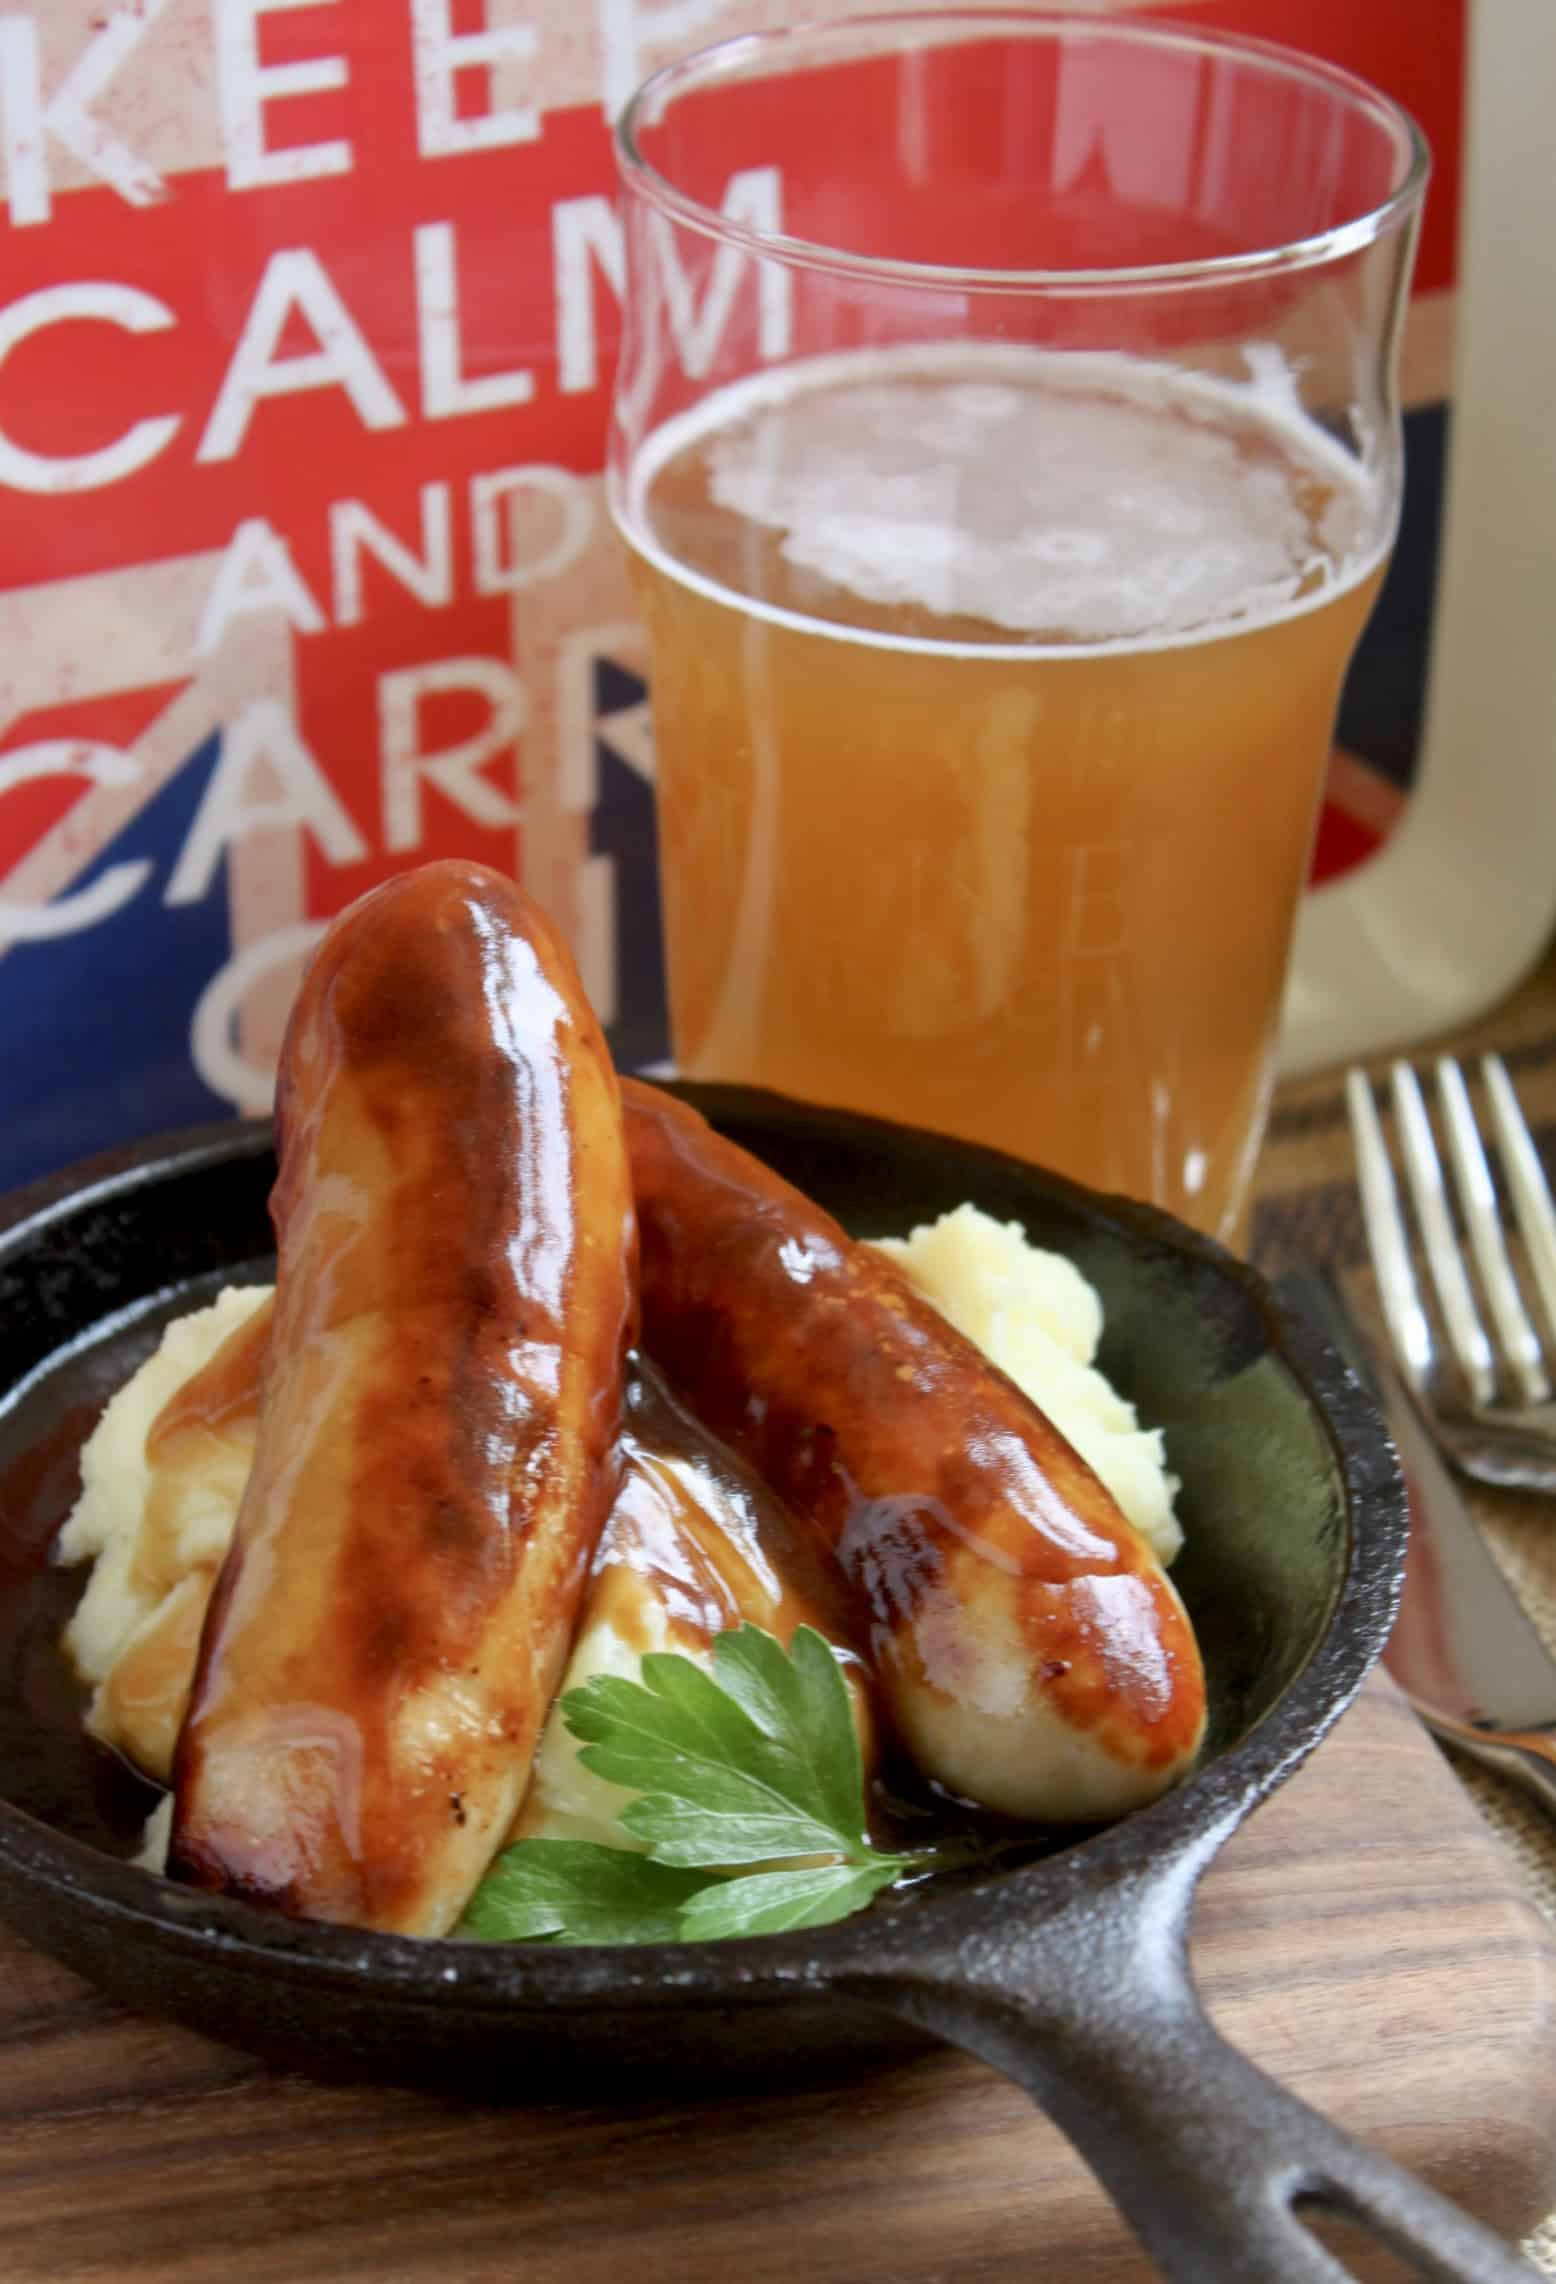 bangers and mash and beer